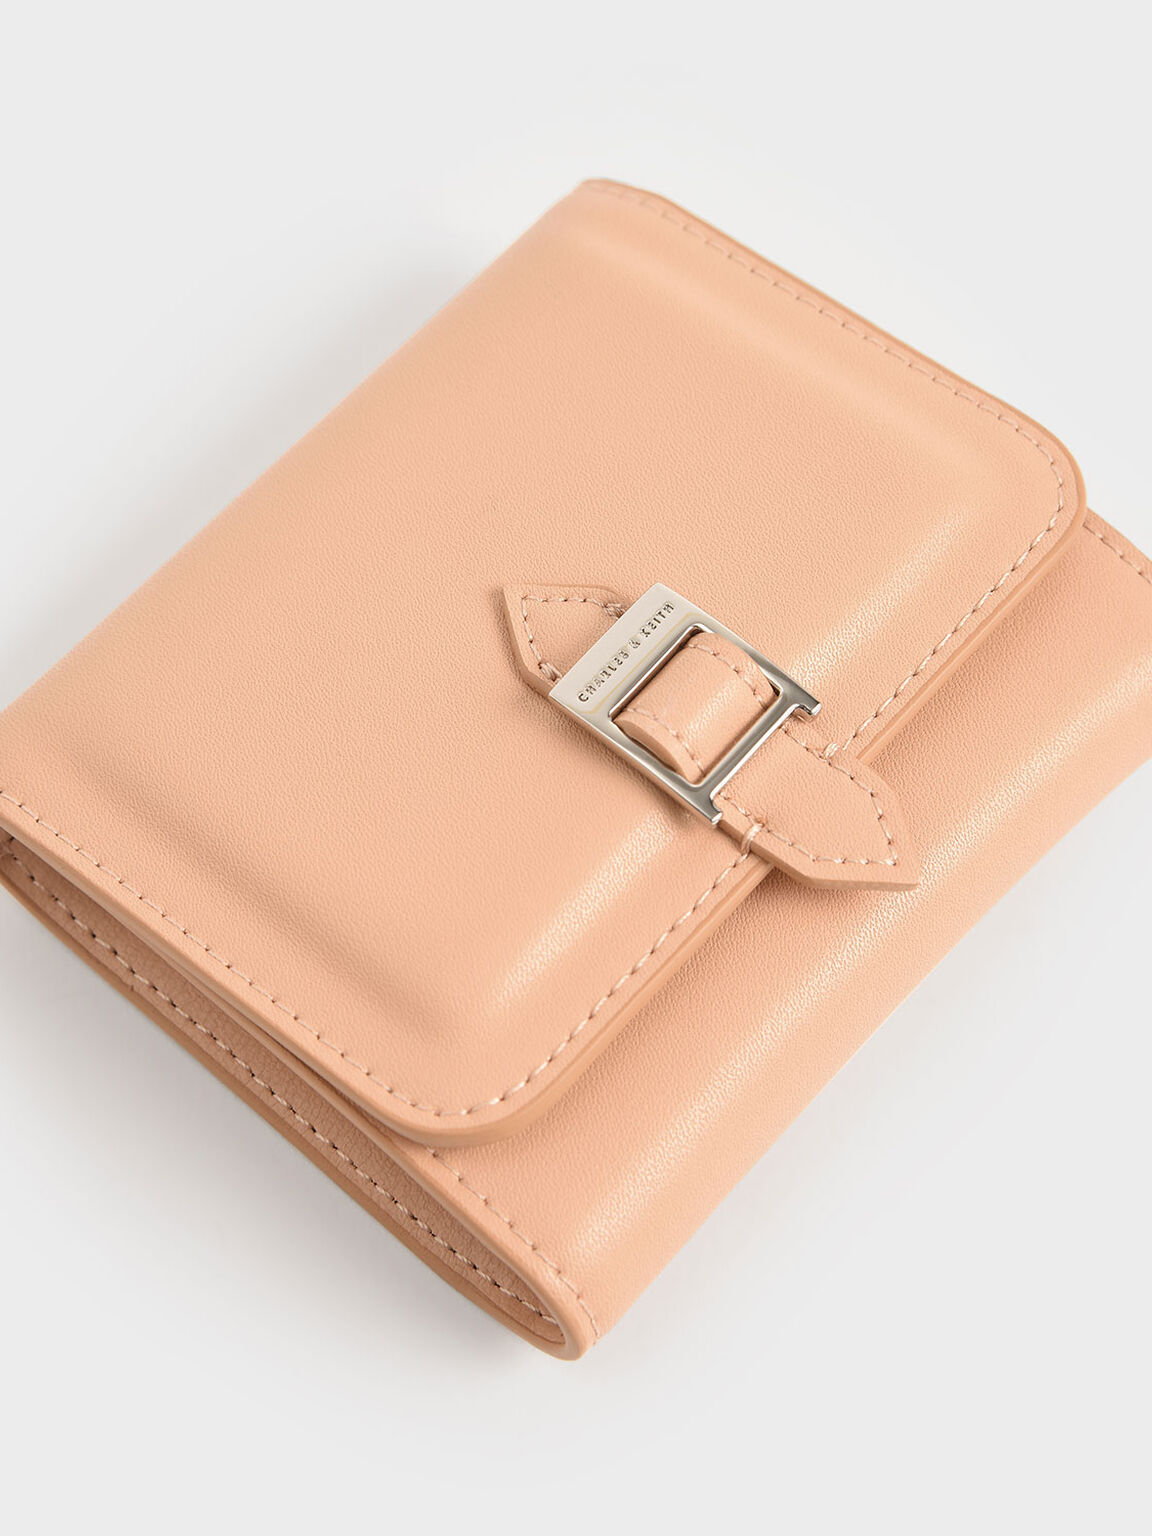 Buckle Strap Short Wallet, Nude, hi-res